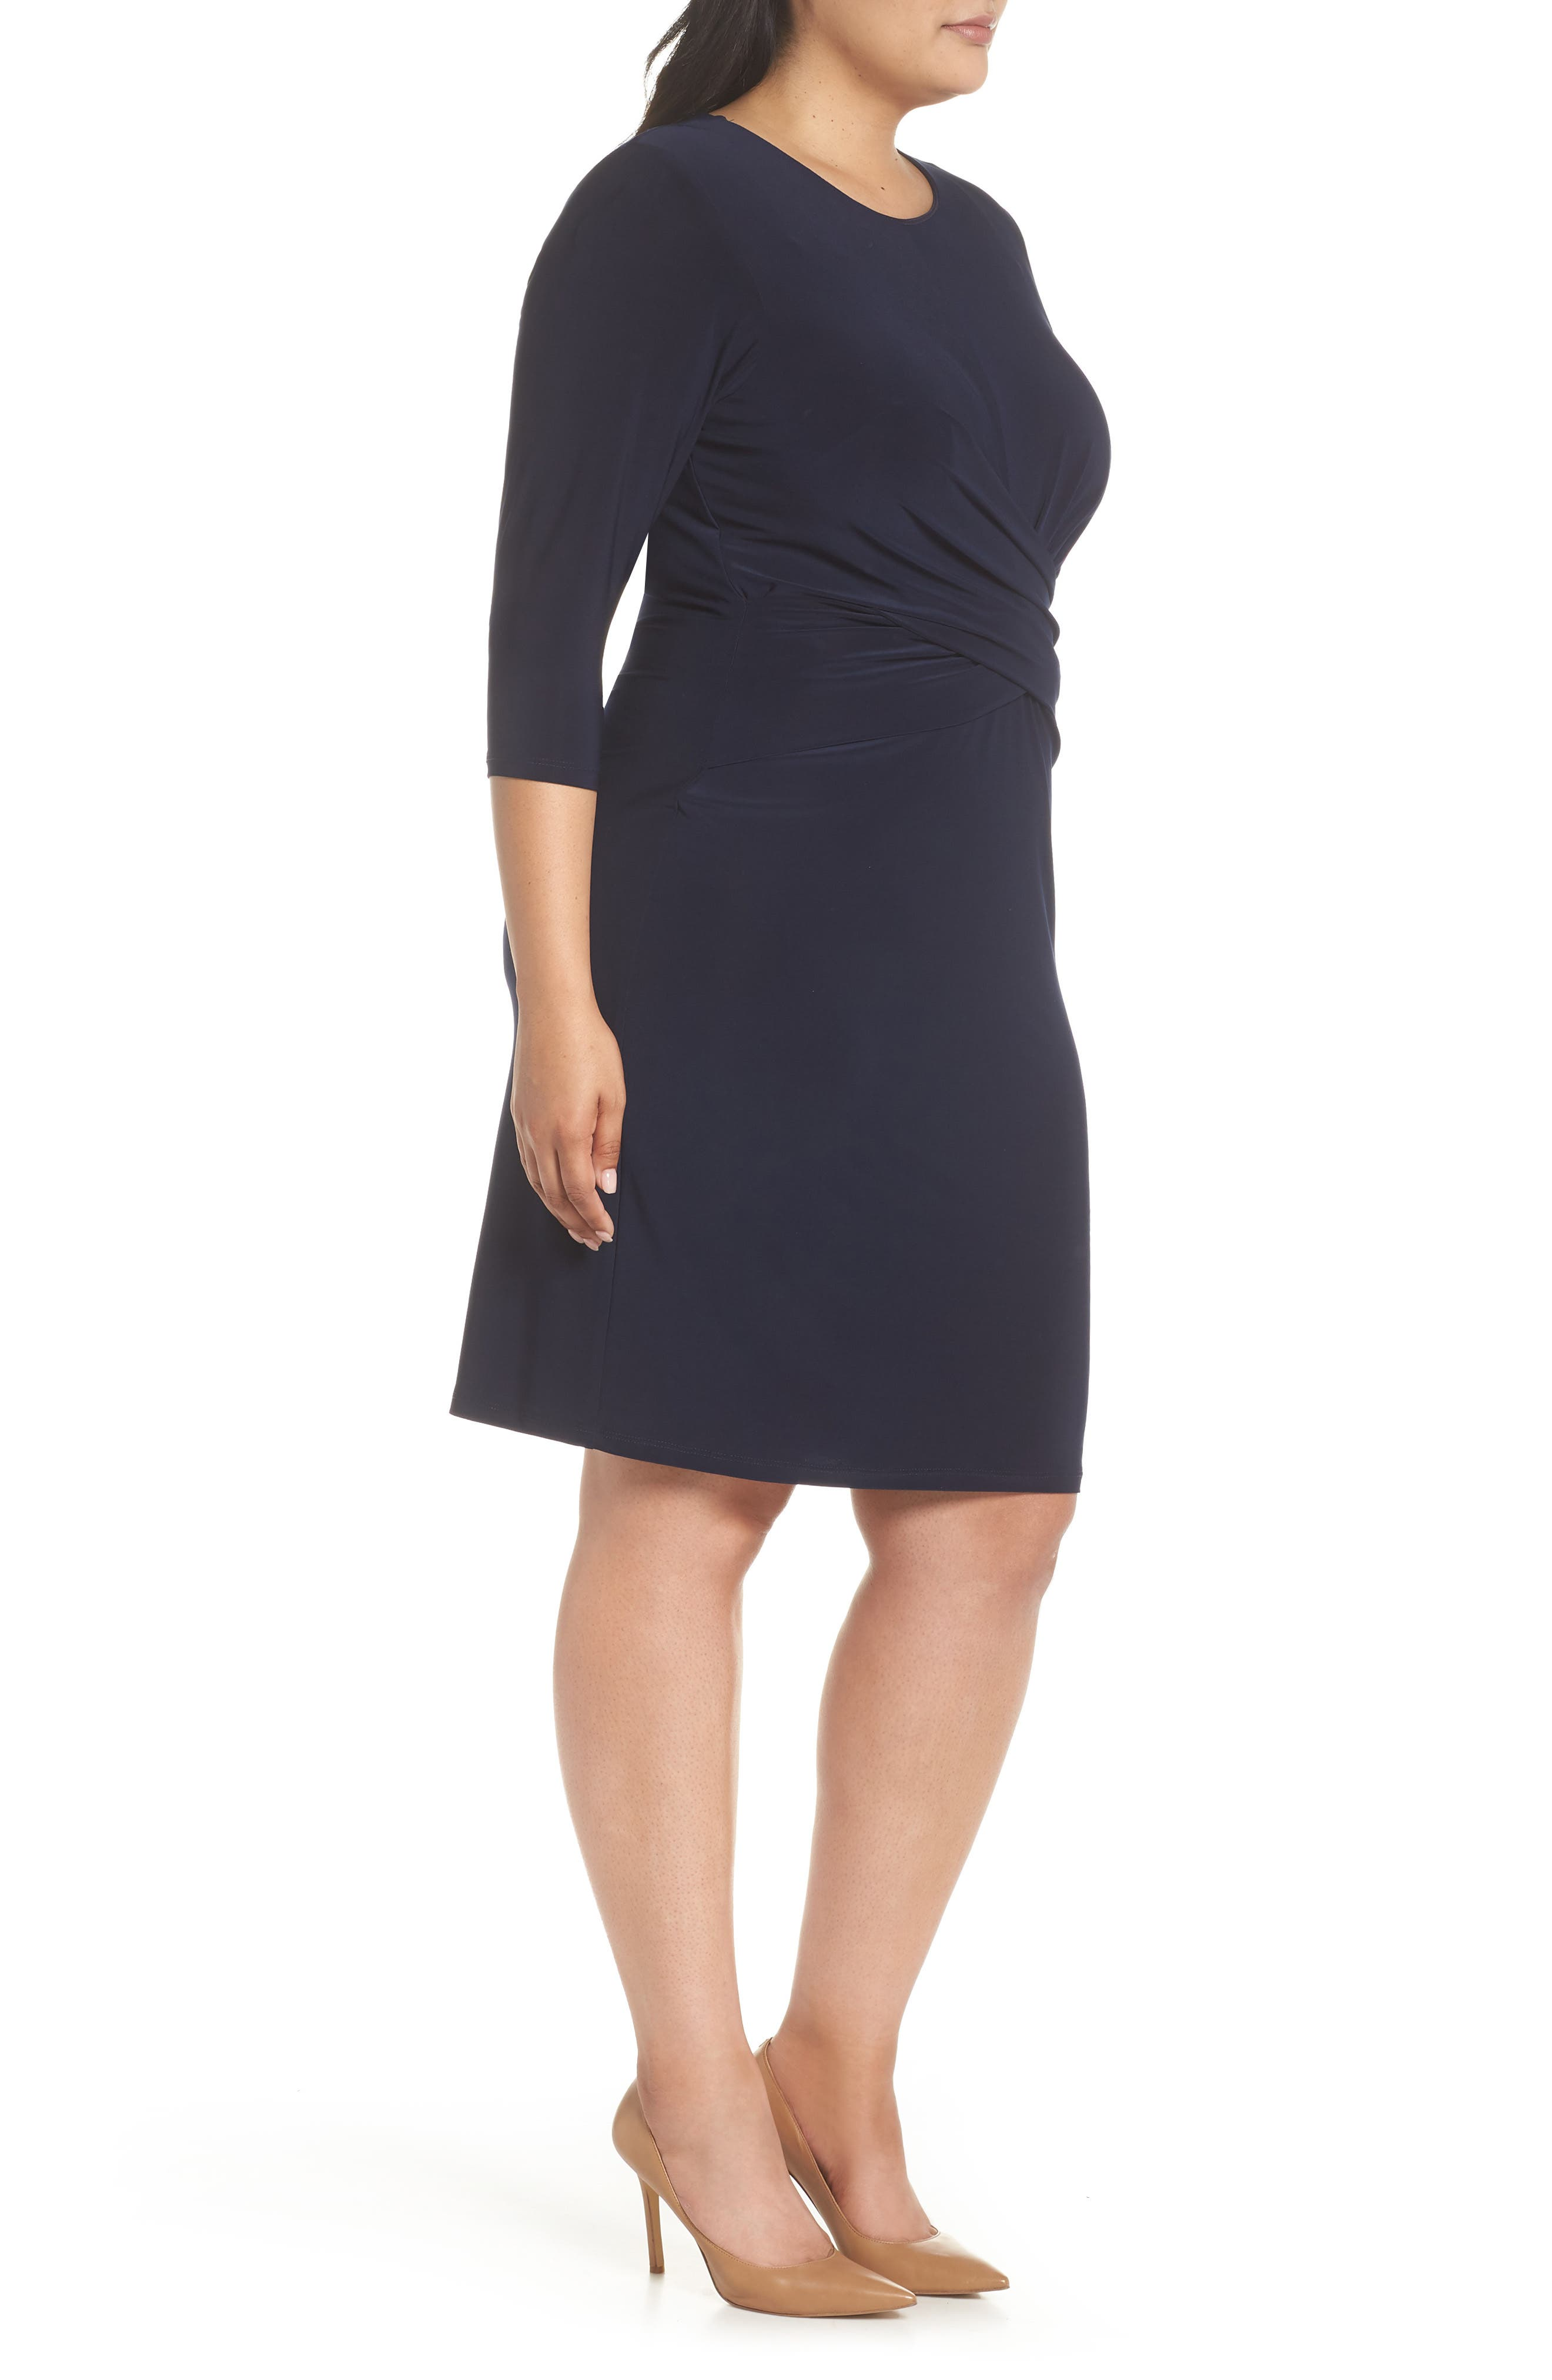 ELIZA J, Ruched Waist Sheath Dress, Alternate thumbnail 4, color, NAVY